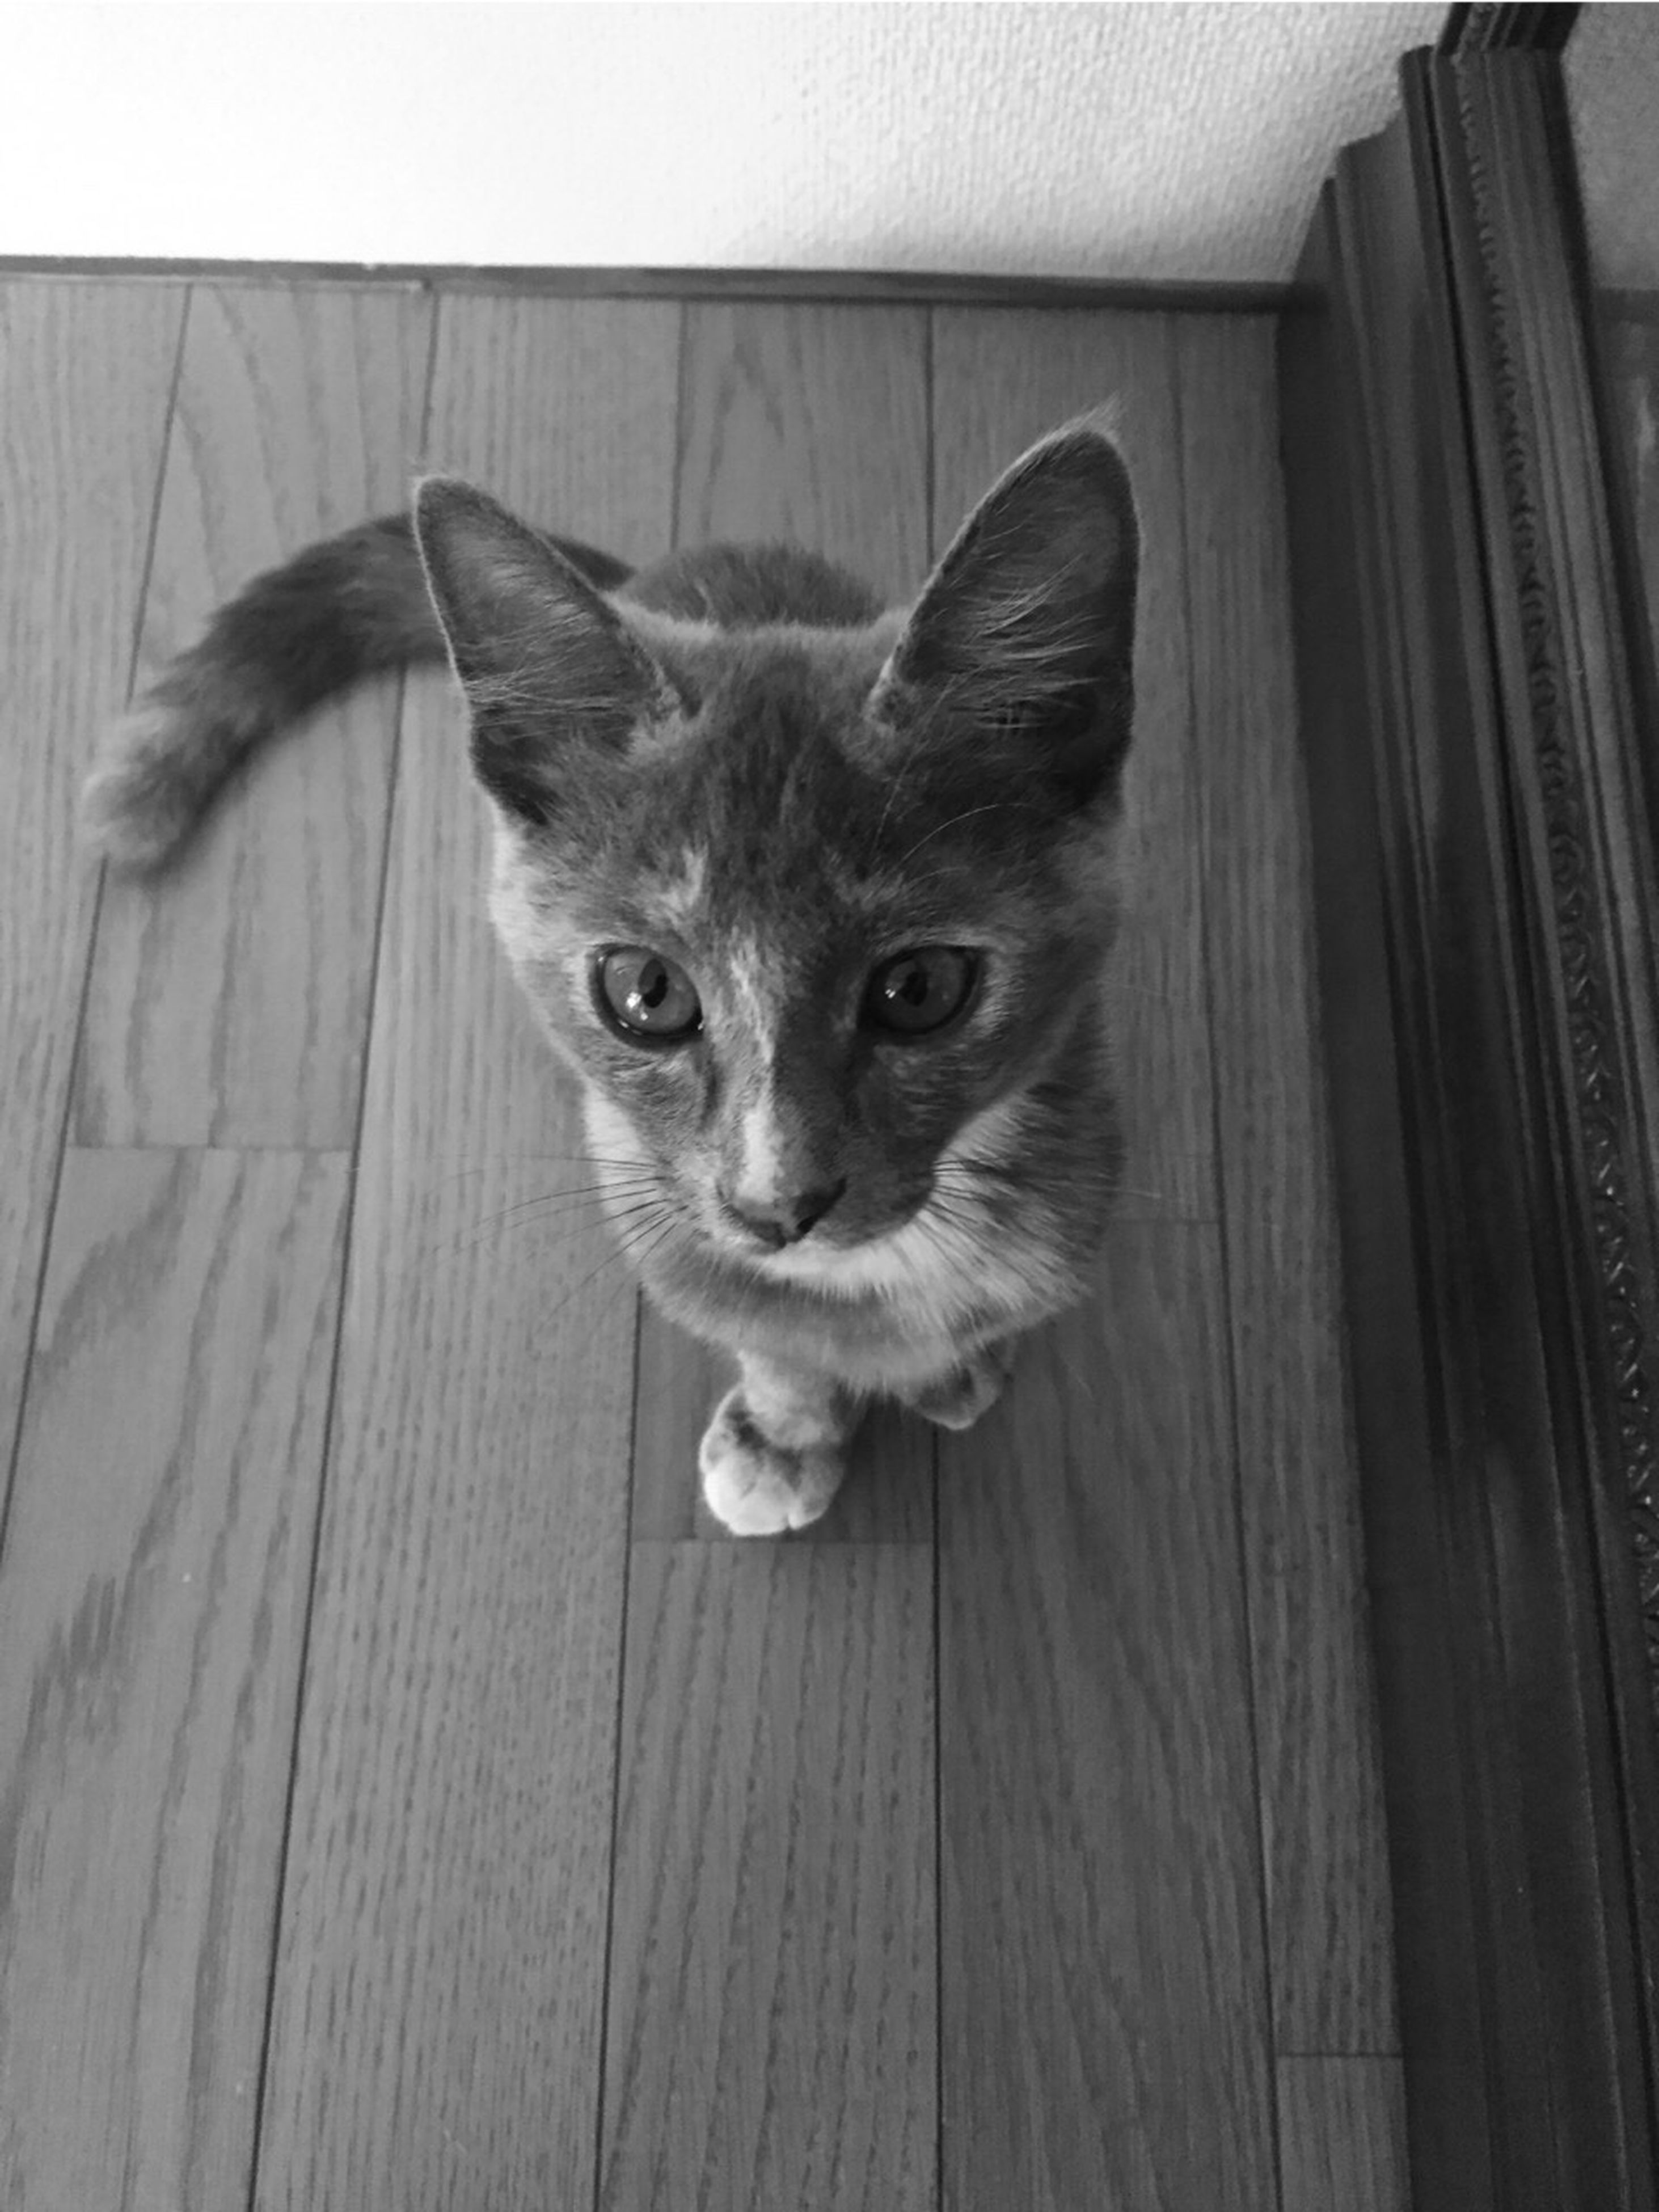 pets, domestic animals, animal themes, one animal, domestic cat, cat, looking at camera, portrait, feline, mammal, auto post production filter, close-up, wood - material, whisker, plank, hardwood floor, wooden, alertness, zoology, animal head, animal